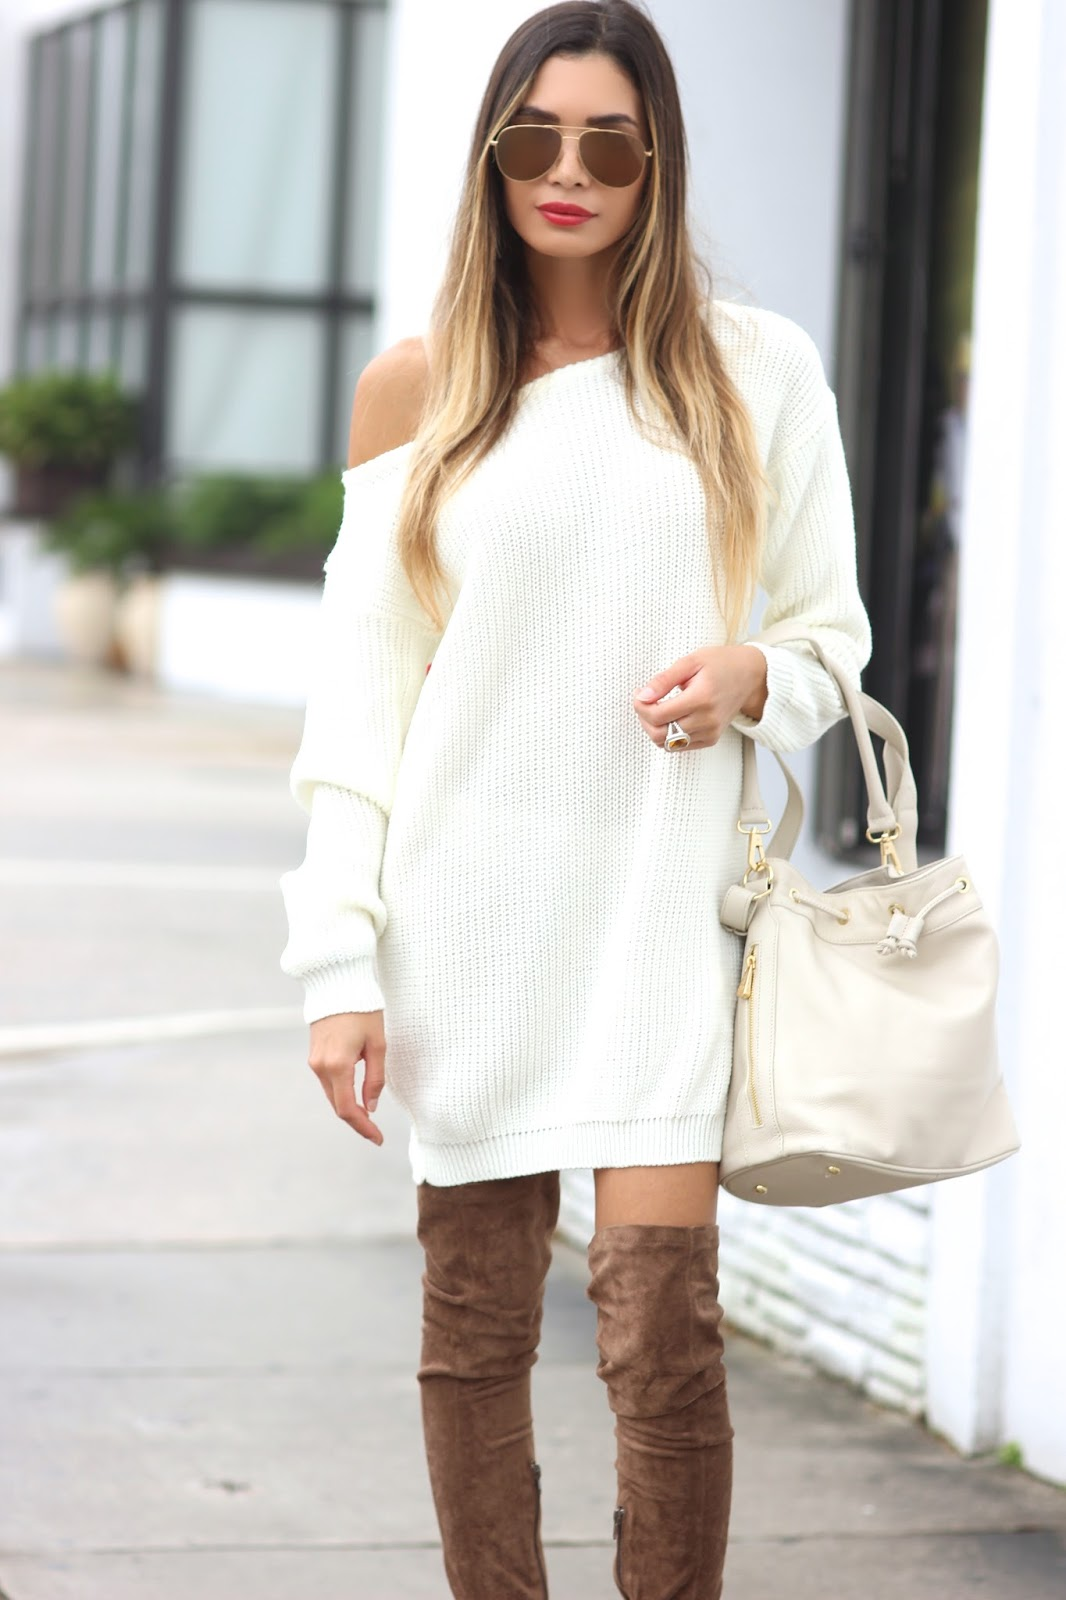 Jasmine Tosh Lately Sweater Dress X Thigh High Boots Weather